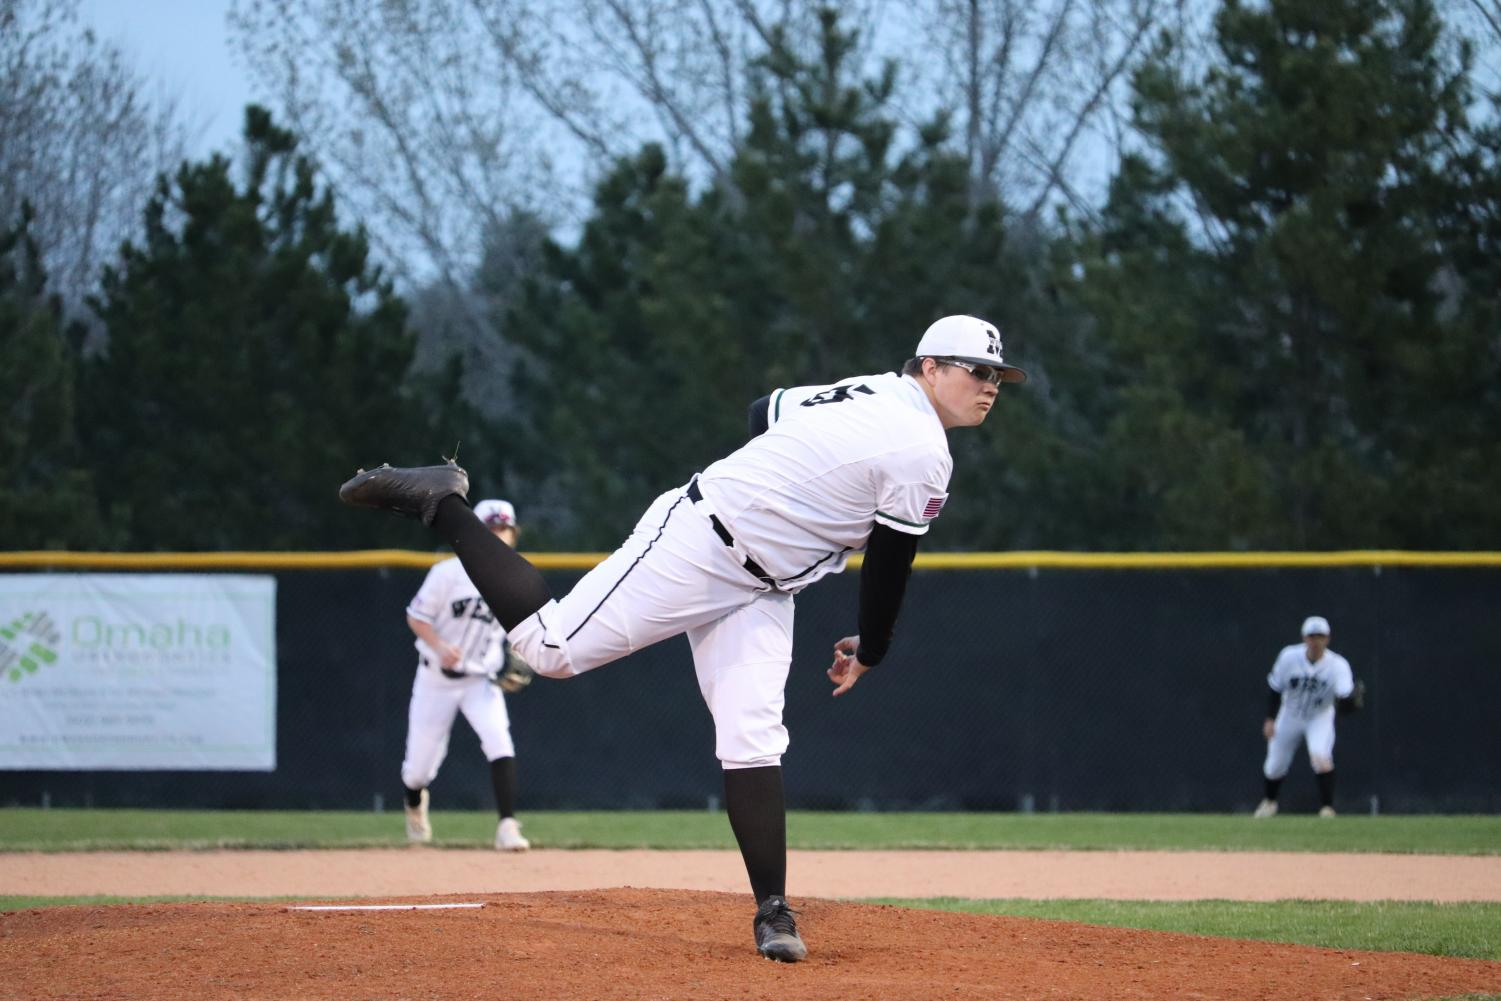 Senior+Keyton+Barnes+following+through+with+his+pitch+to+home+plate.+